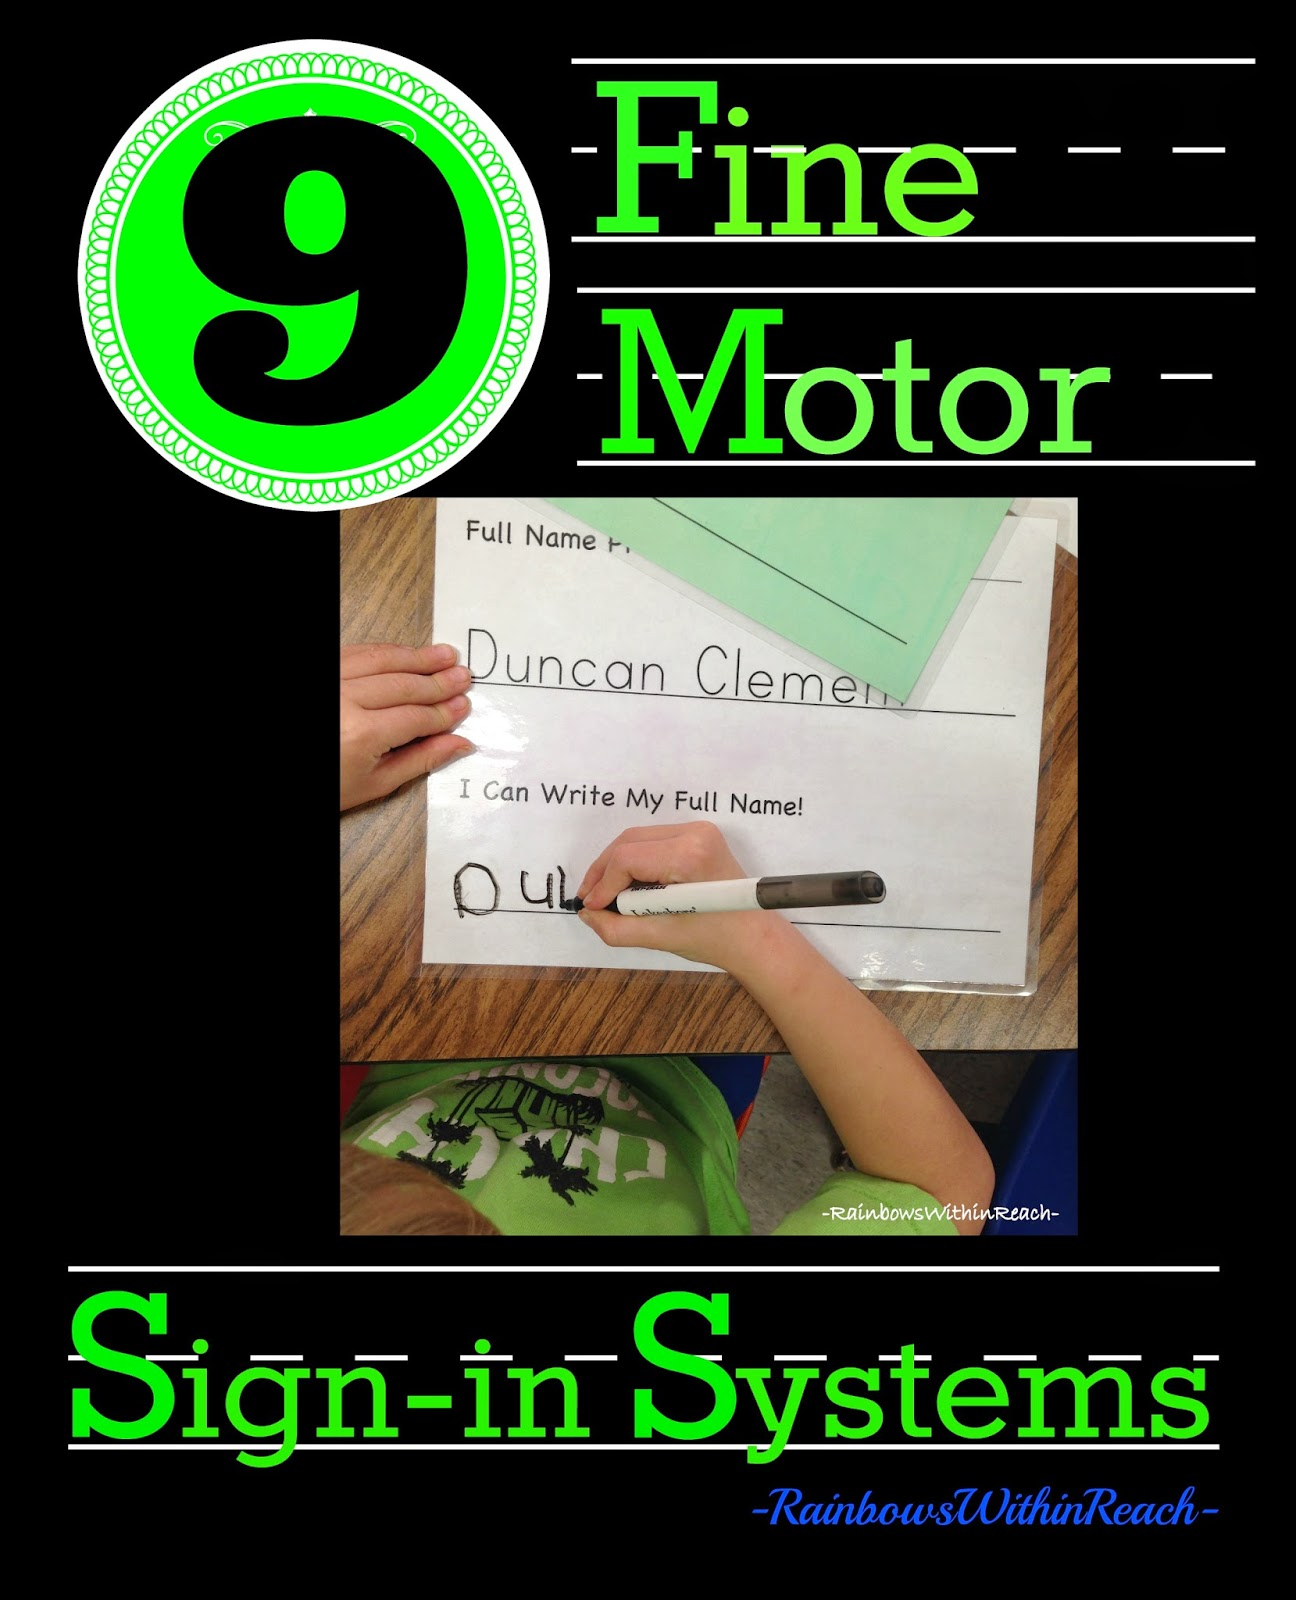 "9 Methods of Fine Motor ""Sign-in Systems"" in PreK +K Classrooms via RainbowsWithinReach"